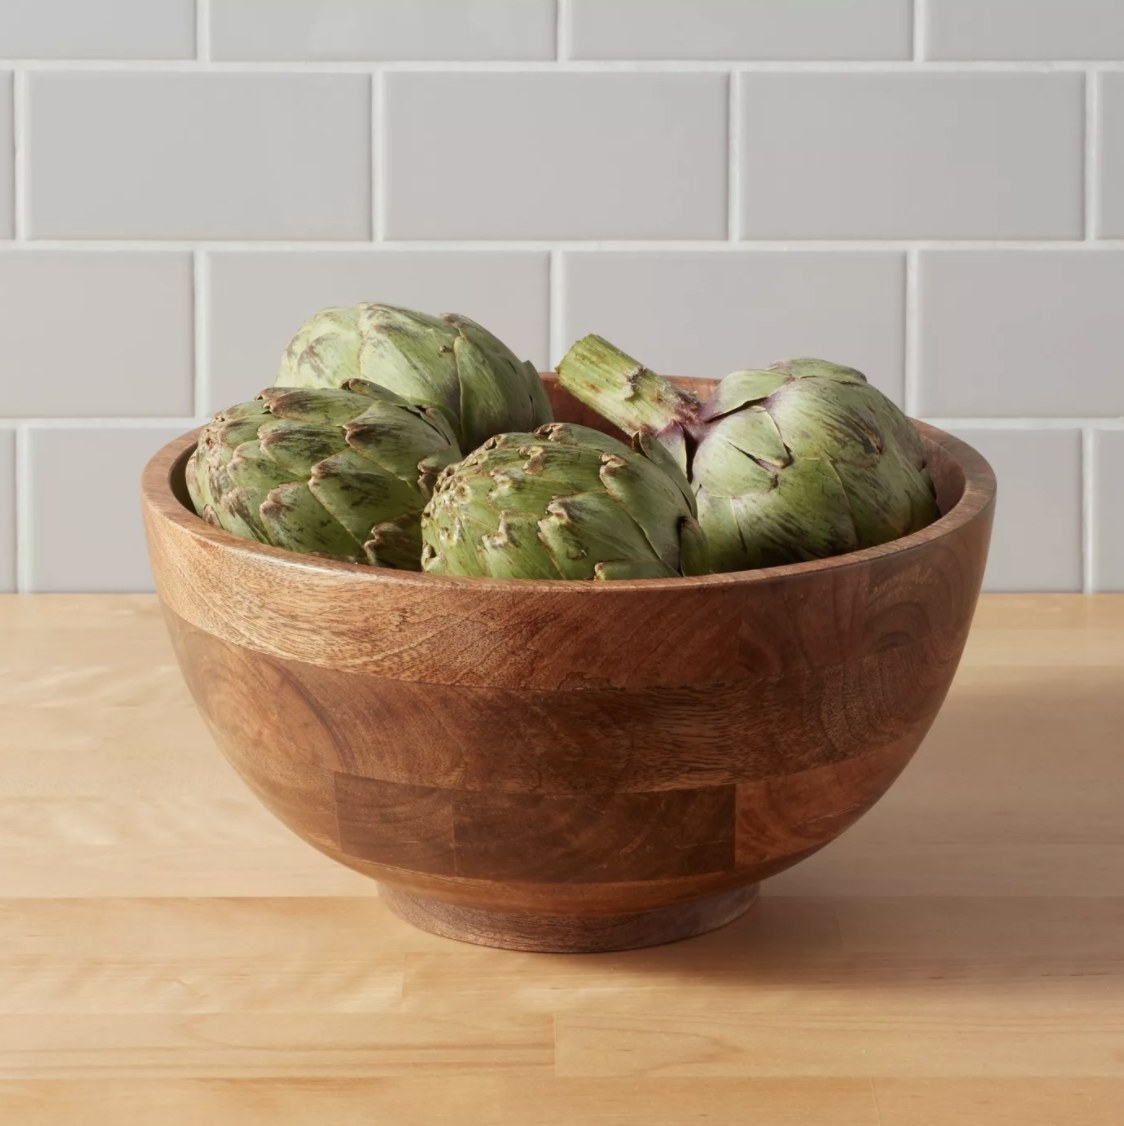 the bowl with artichokes in it